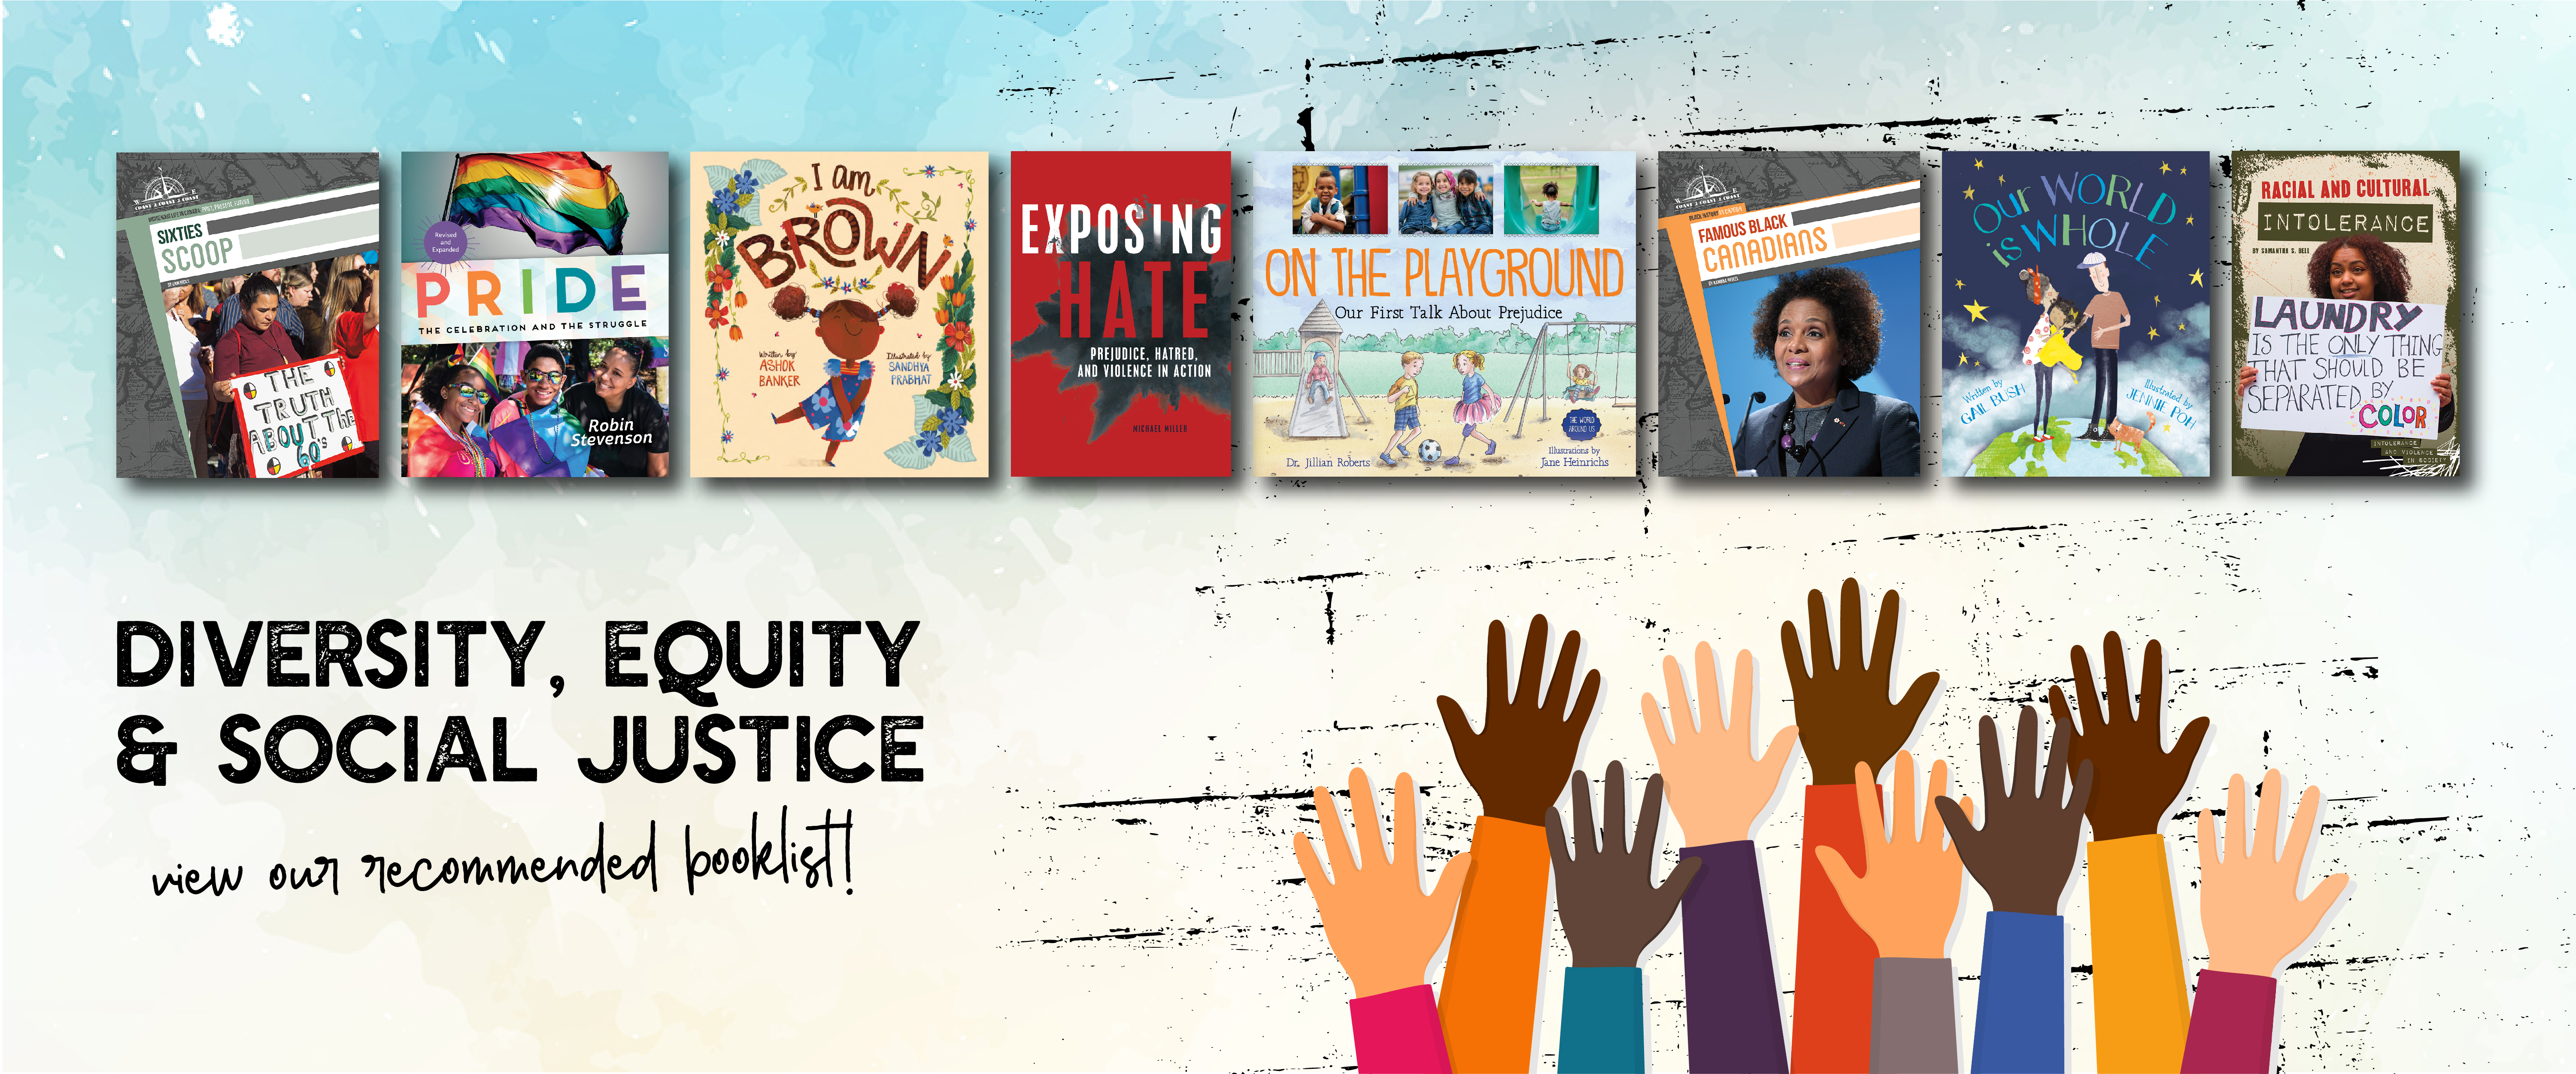 Diversity, Equity & Social Justice Booklist